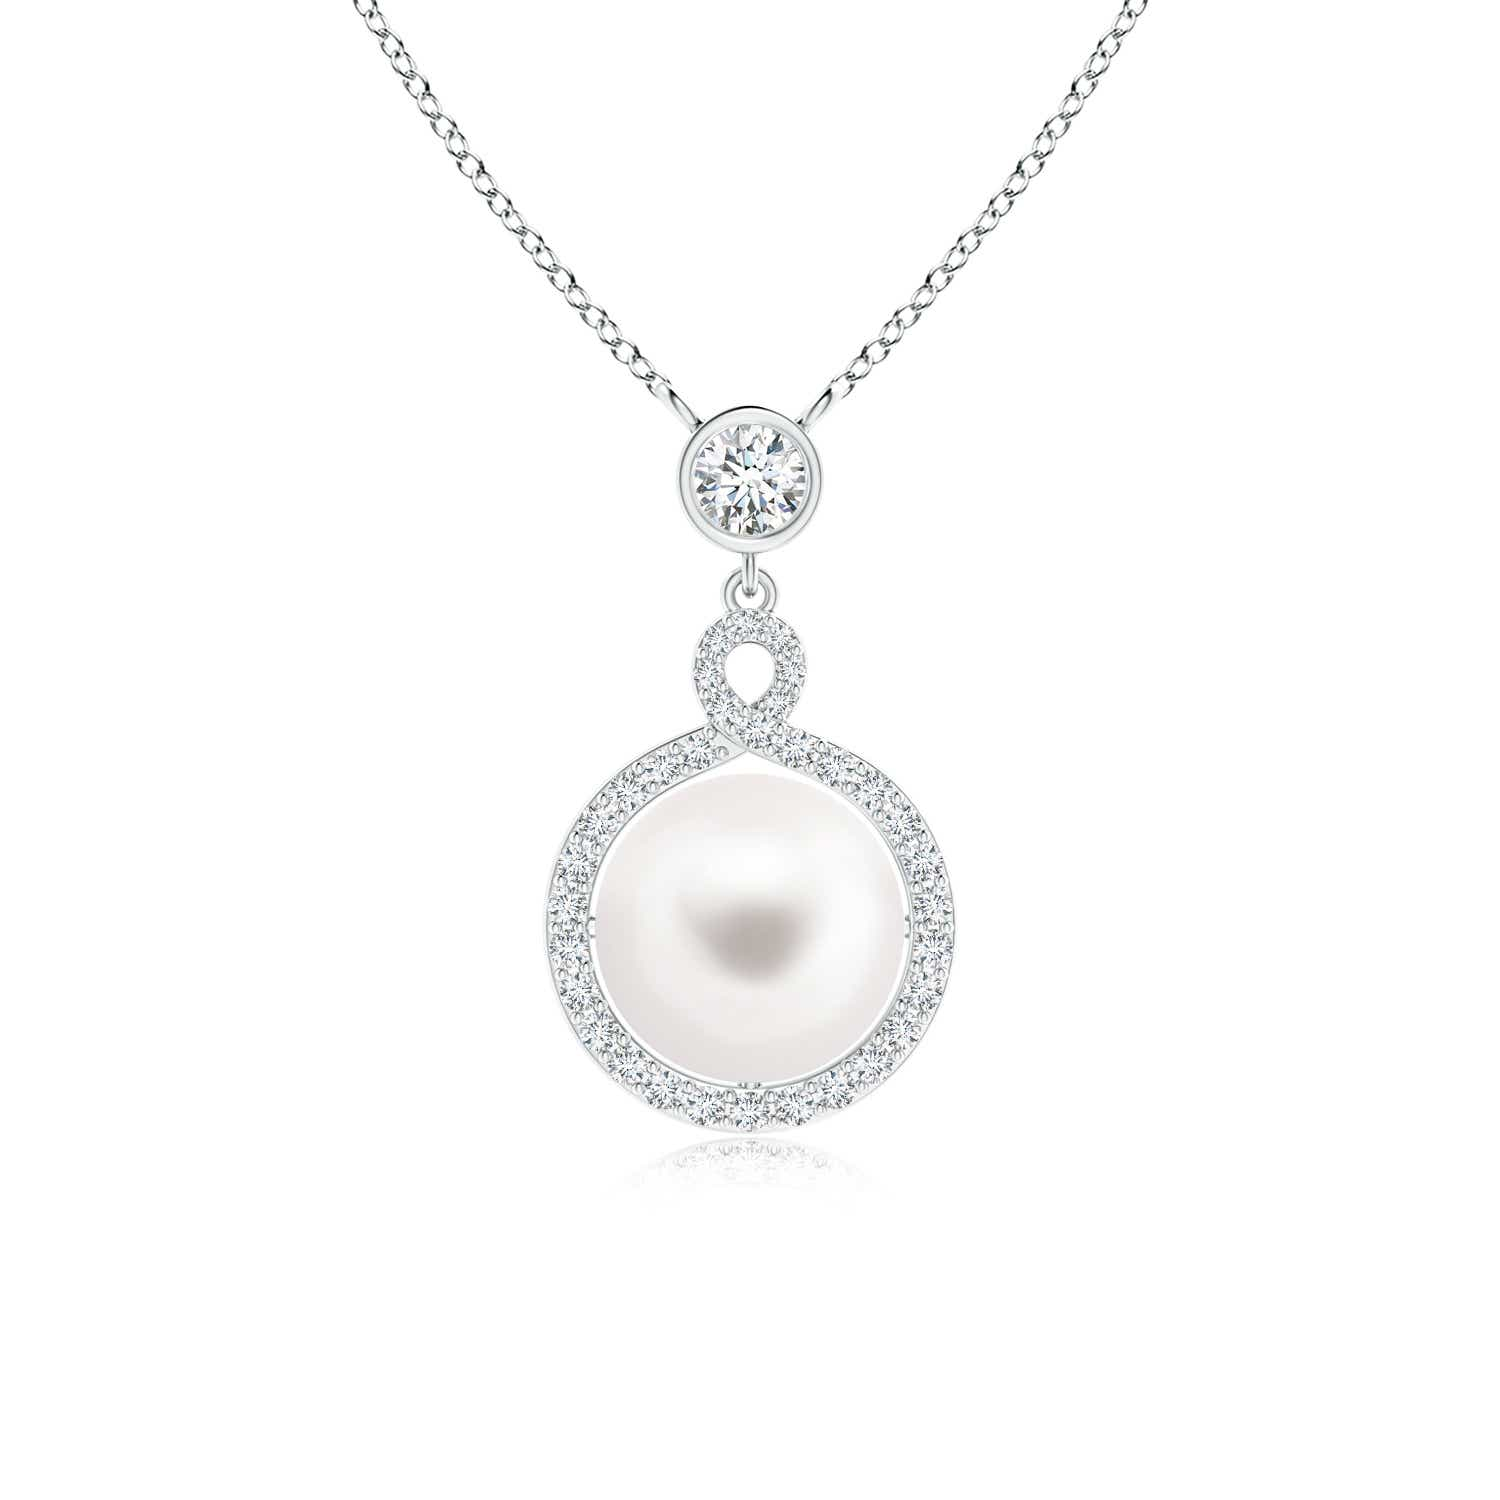 FreshWater Cultured Pearl Drop Pendant with Twisted Diamond Halo - Angara.com